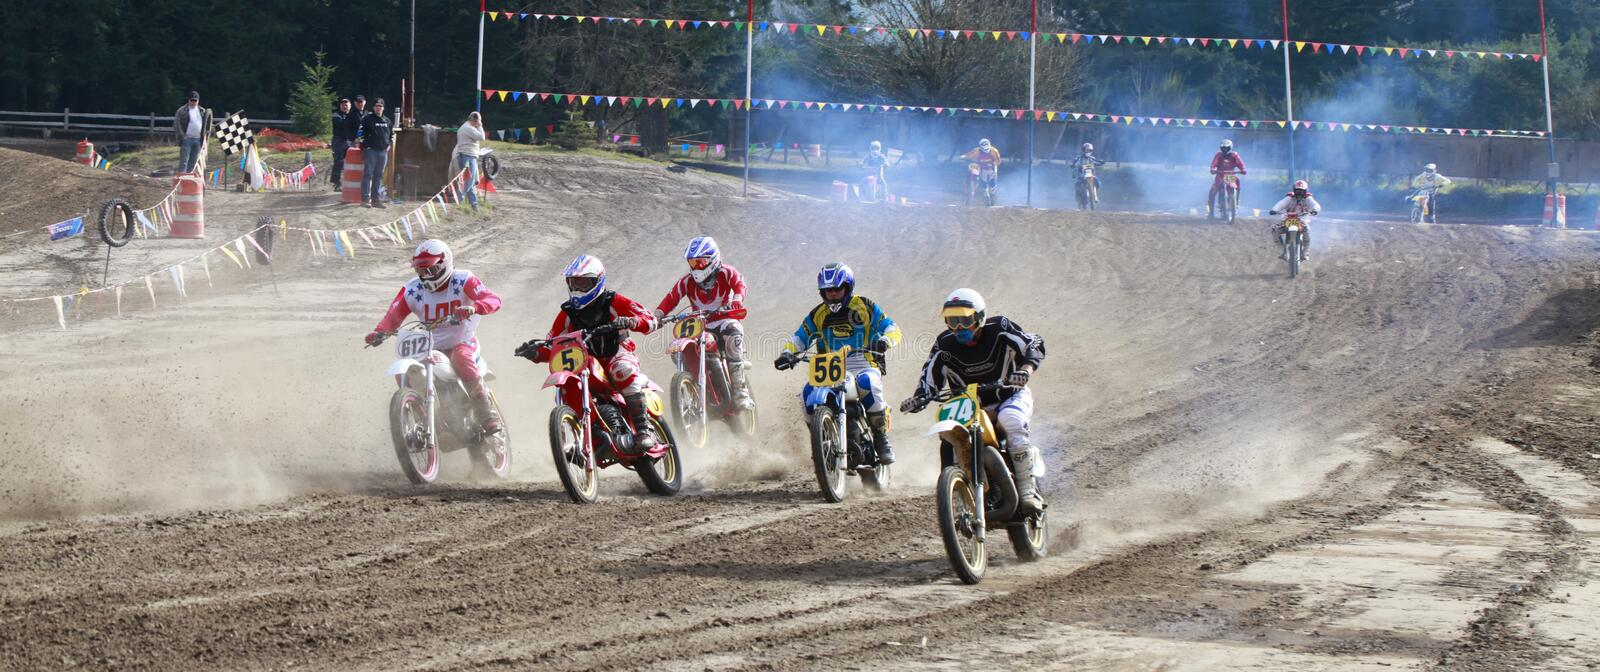 Download Sport Vintage Motocycle Race. Editorial Photography - Image: 29300177